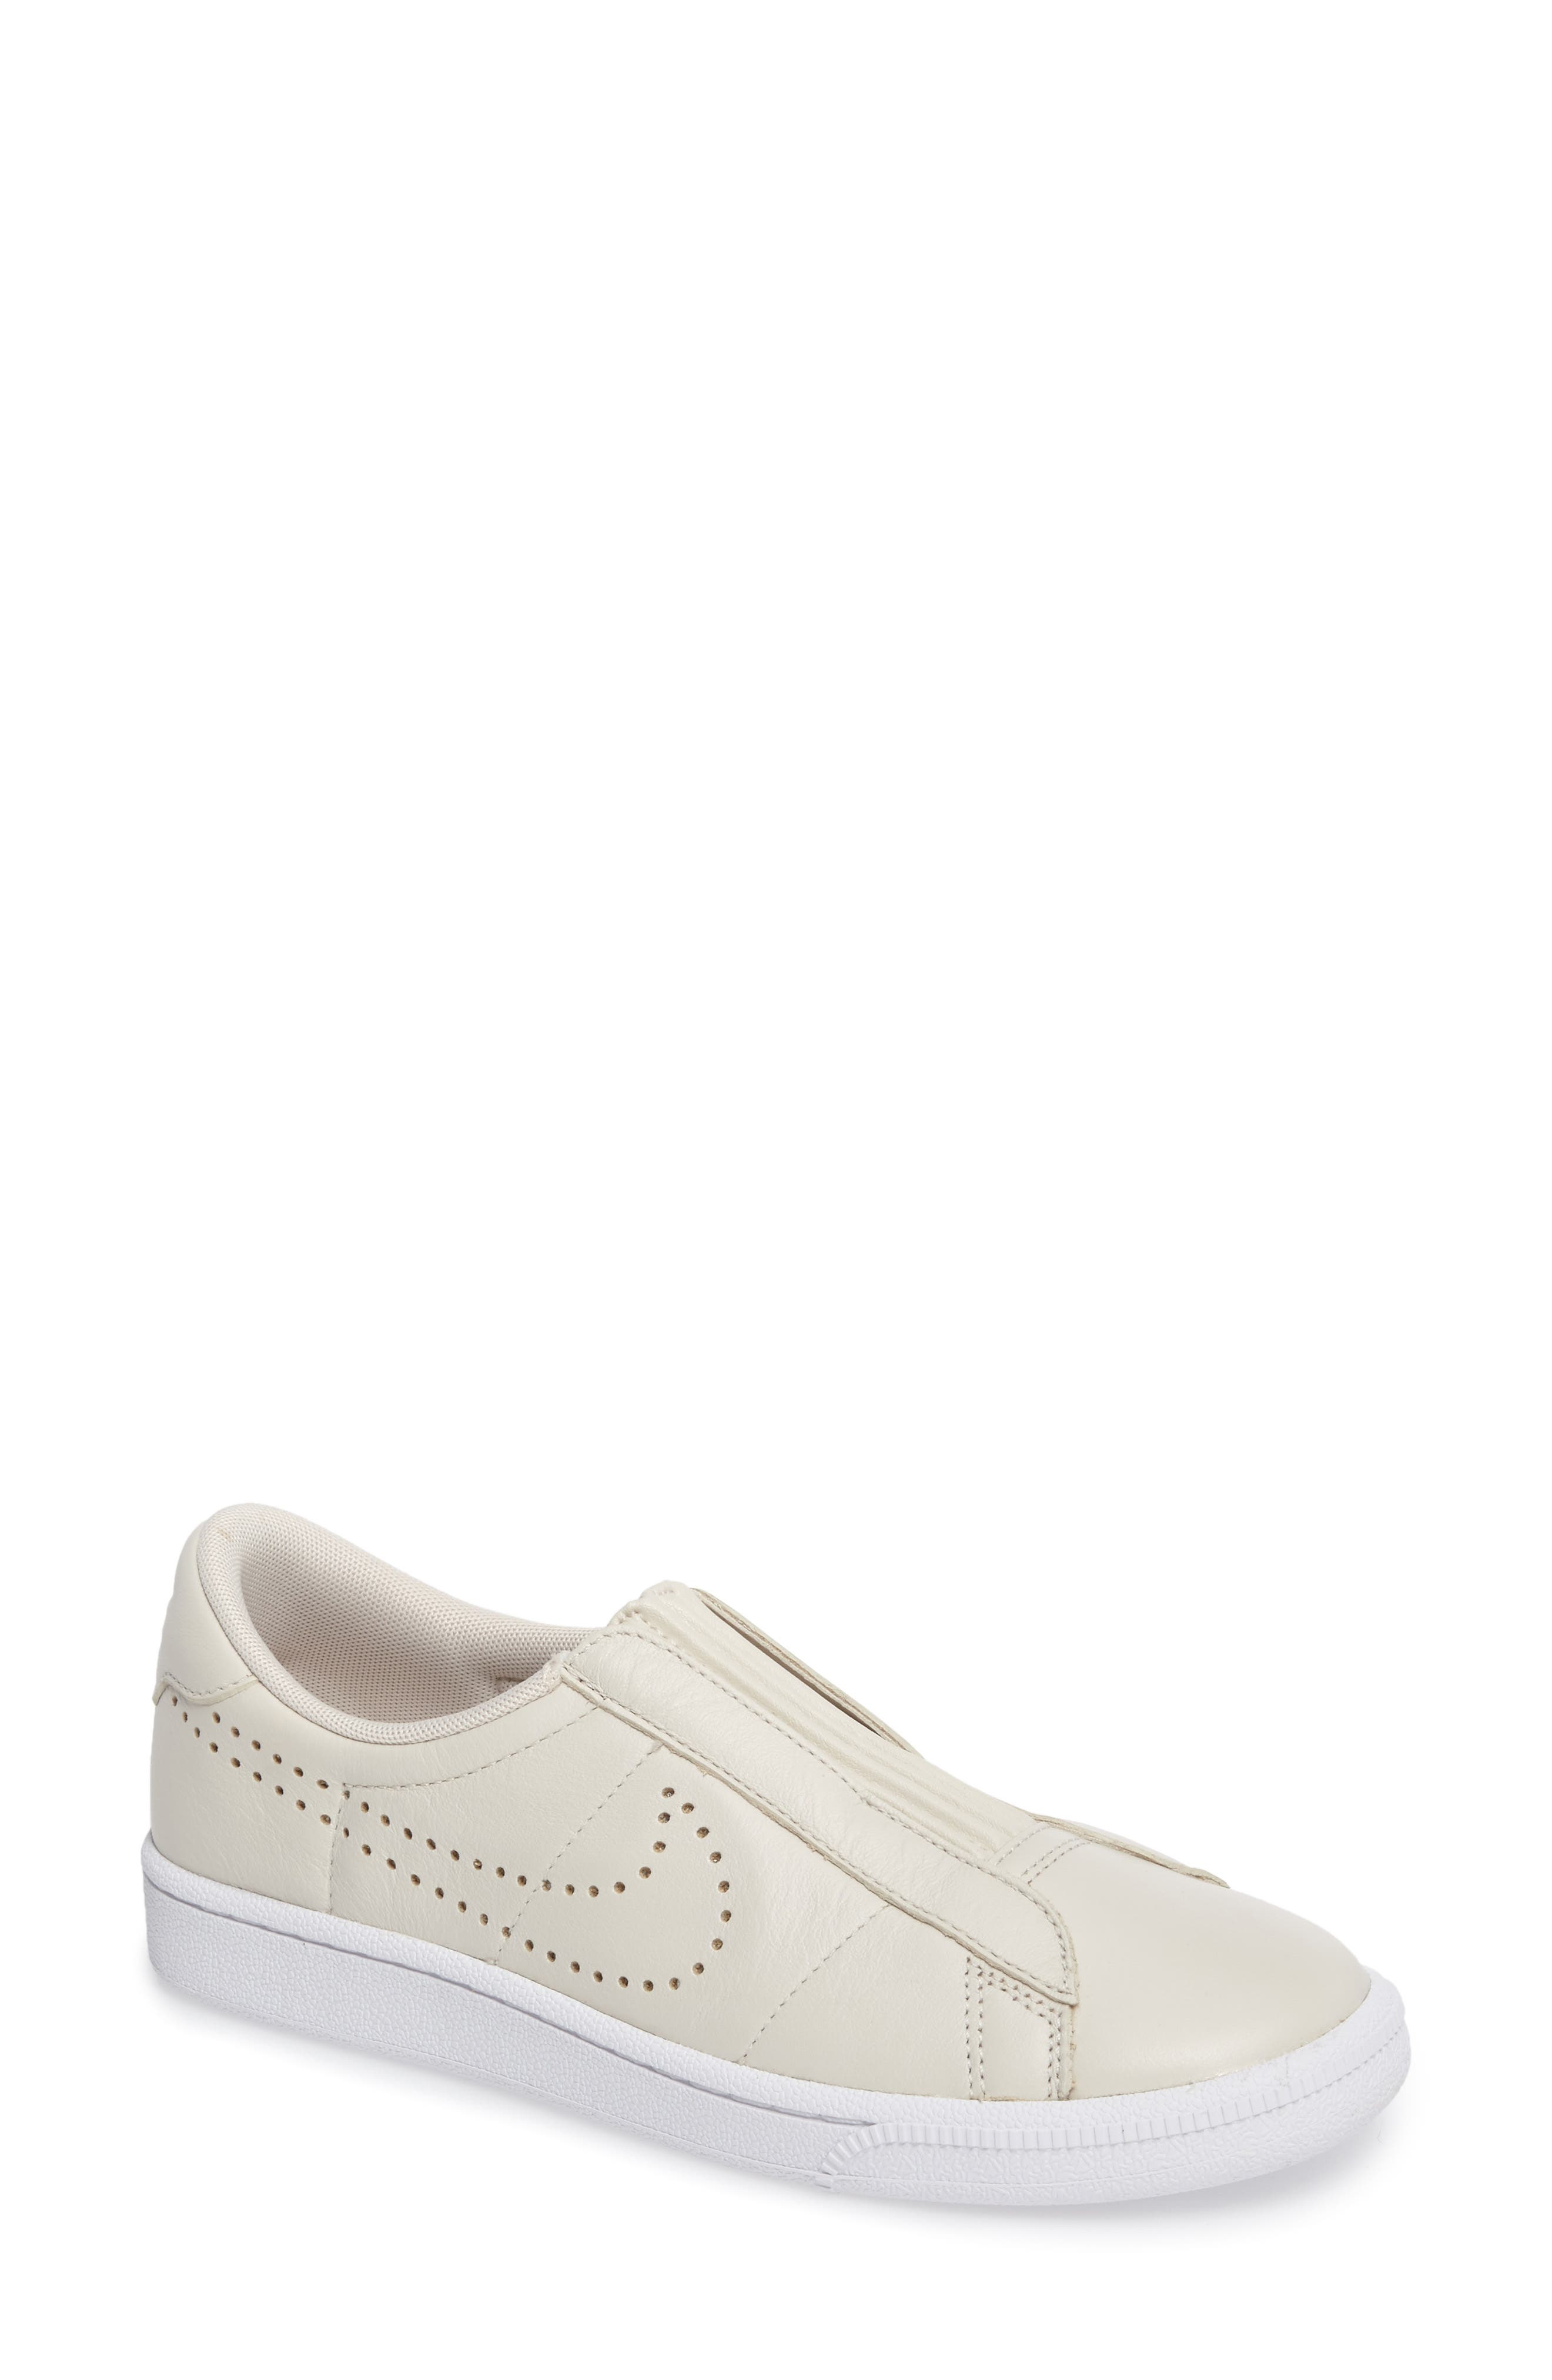 NIKE Classic EZ Slip-On Tennis Shoe